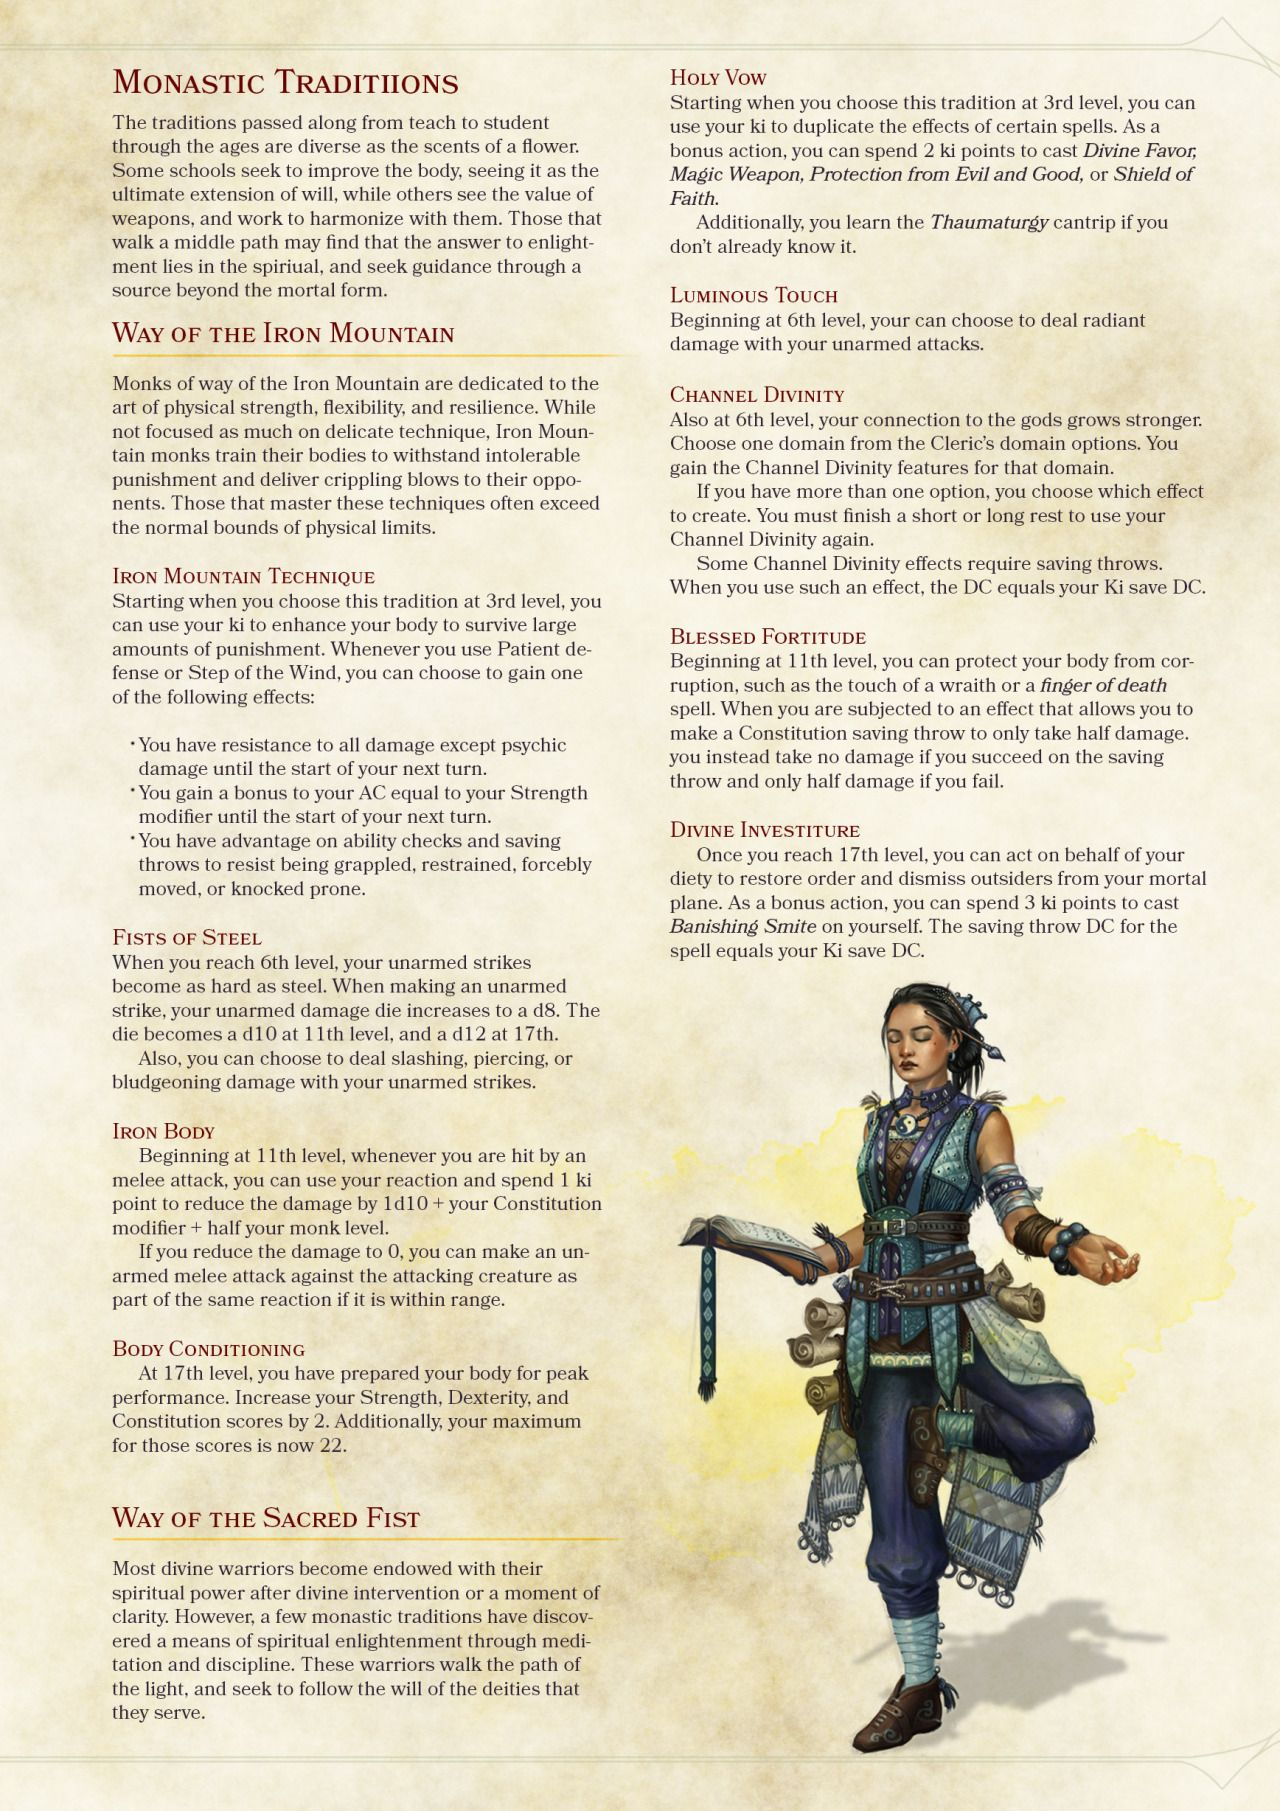 DnD 5e Homebrew — Barbarian, Fighter, Monk and Rogue subclasses by